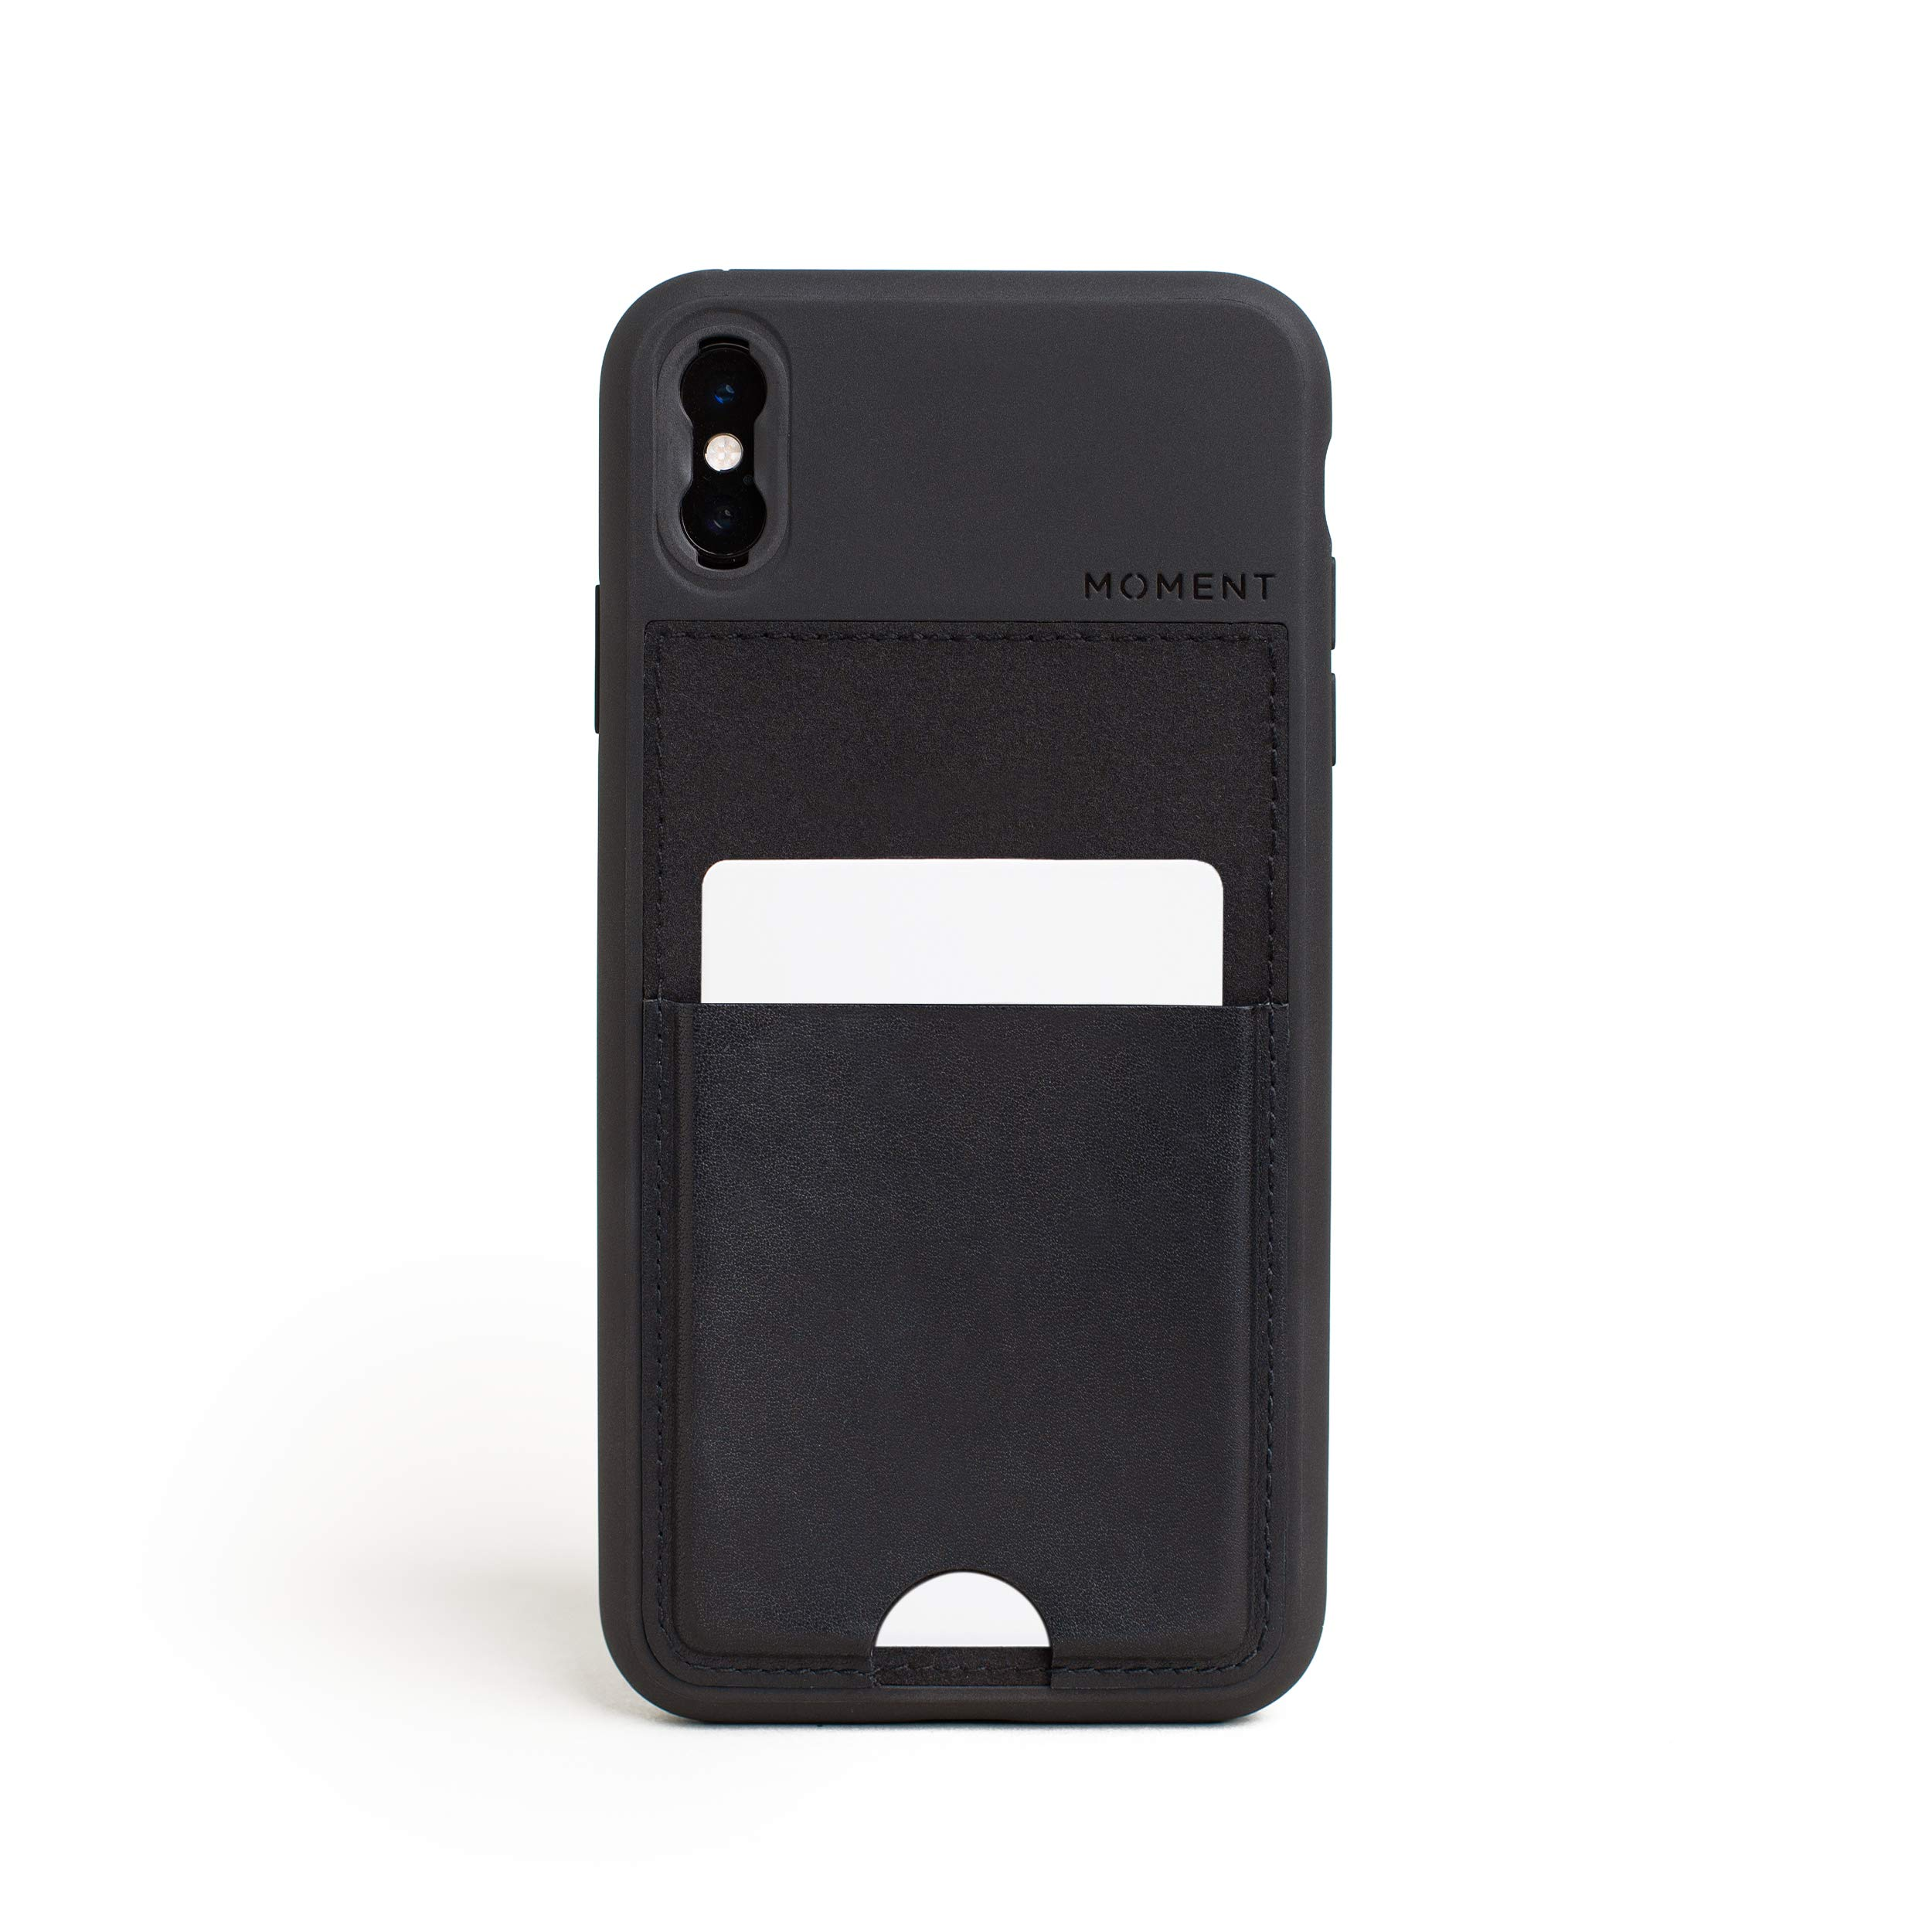 ویکالا · خرید  اصل اورجینال · خرید از آمازون · Moment iPhone Xs Max Wallet Case Photo Case in Black Leather - Thin, Protective, Wrist Strap Friendly Wallet case for Camera Lovers. wekala · ویکالا